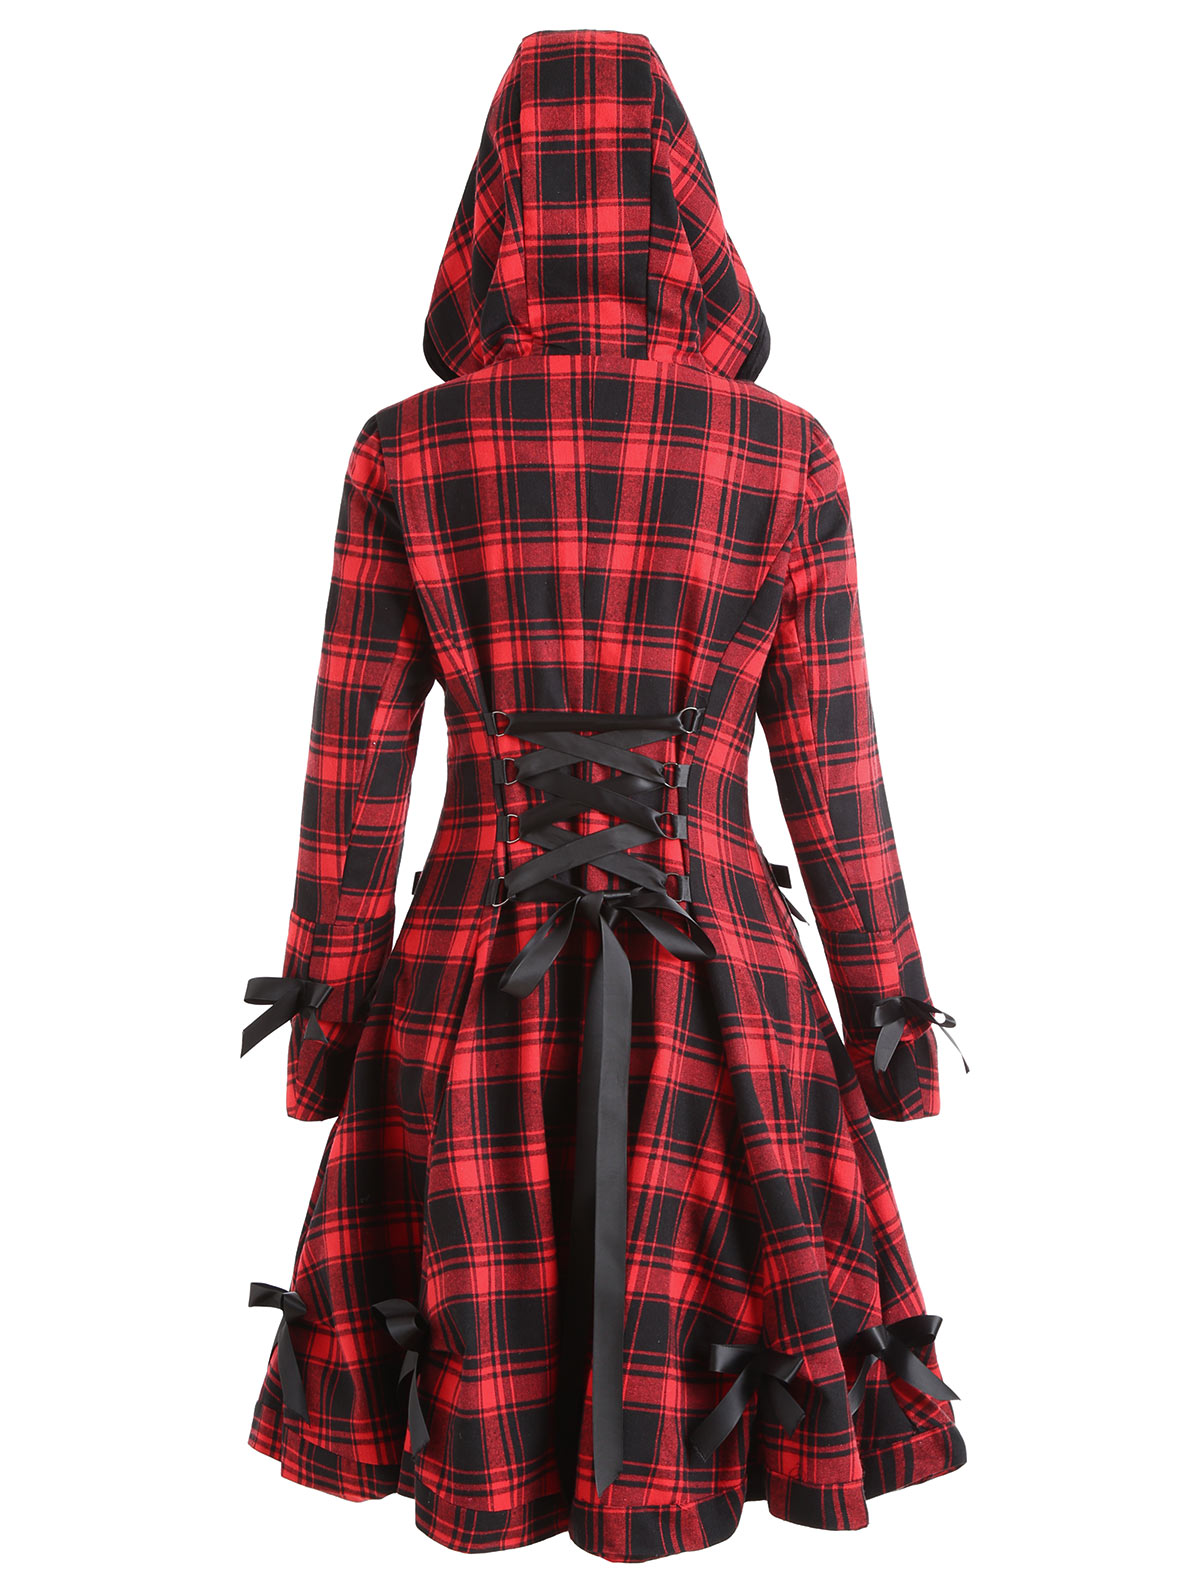 LANGSTAR Autumn winter Coat Women Plaid Hooded Button Up Skirted Coat Gothic Bow Lace-Up Long Pocket Women Outwear   Trench   Coats